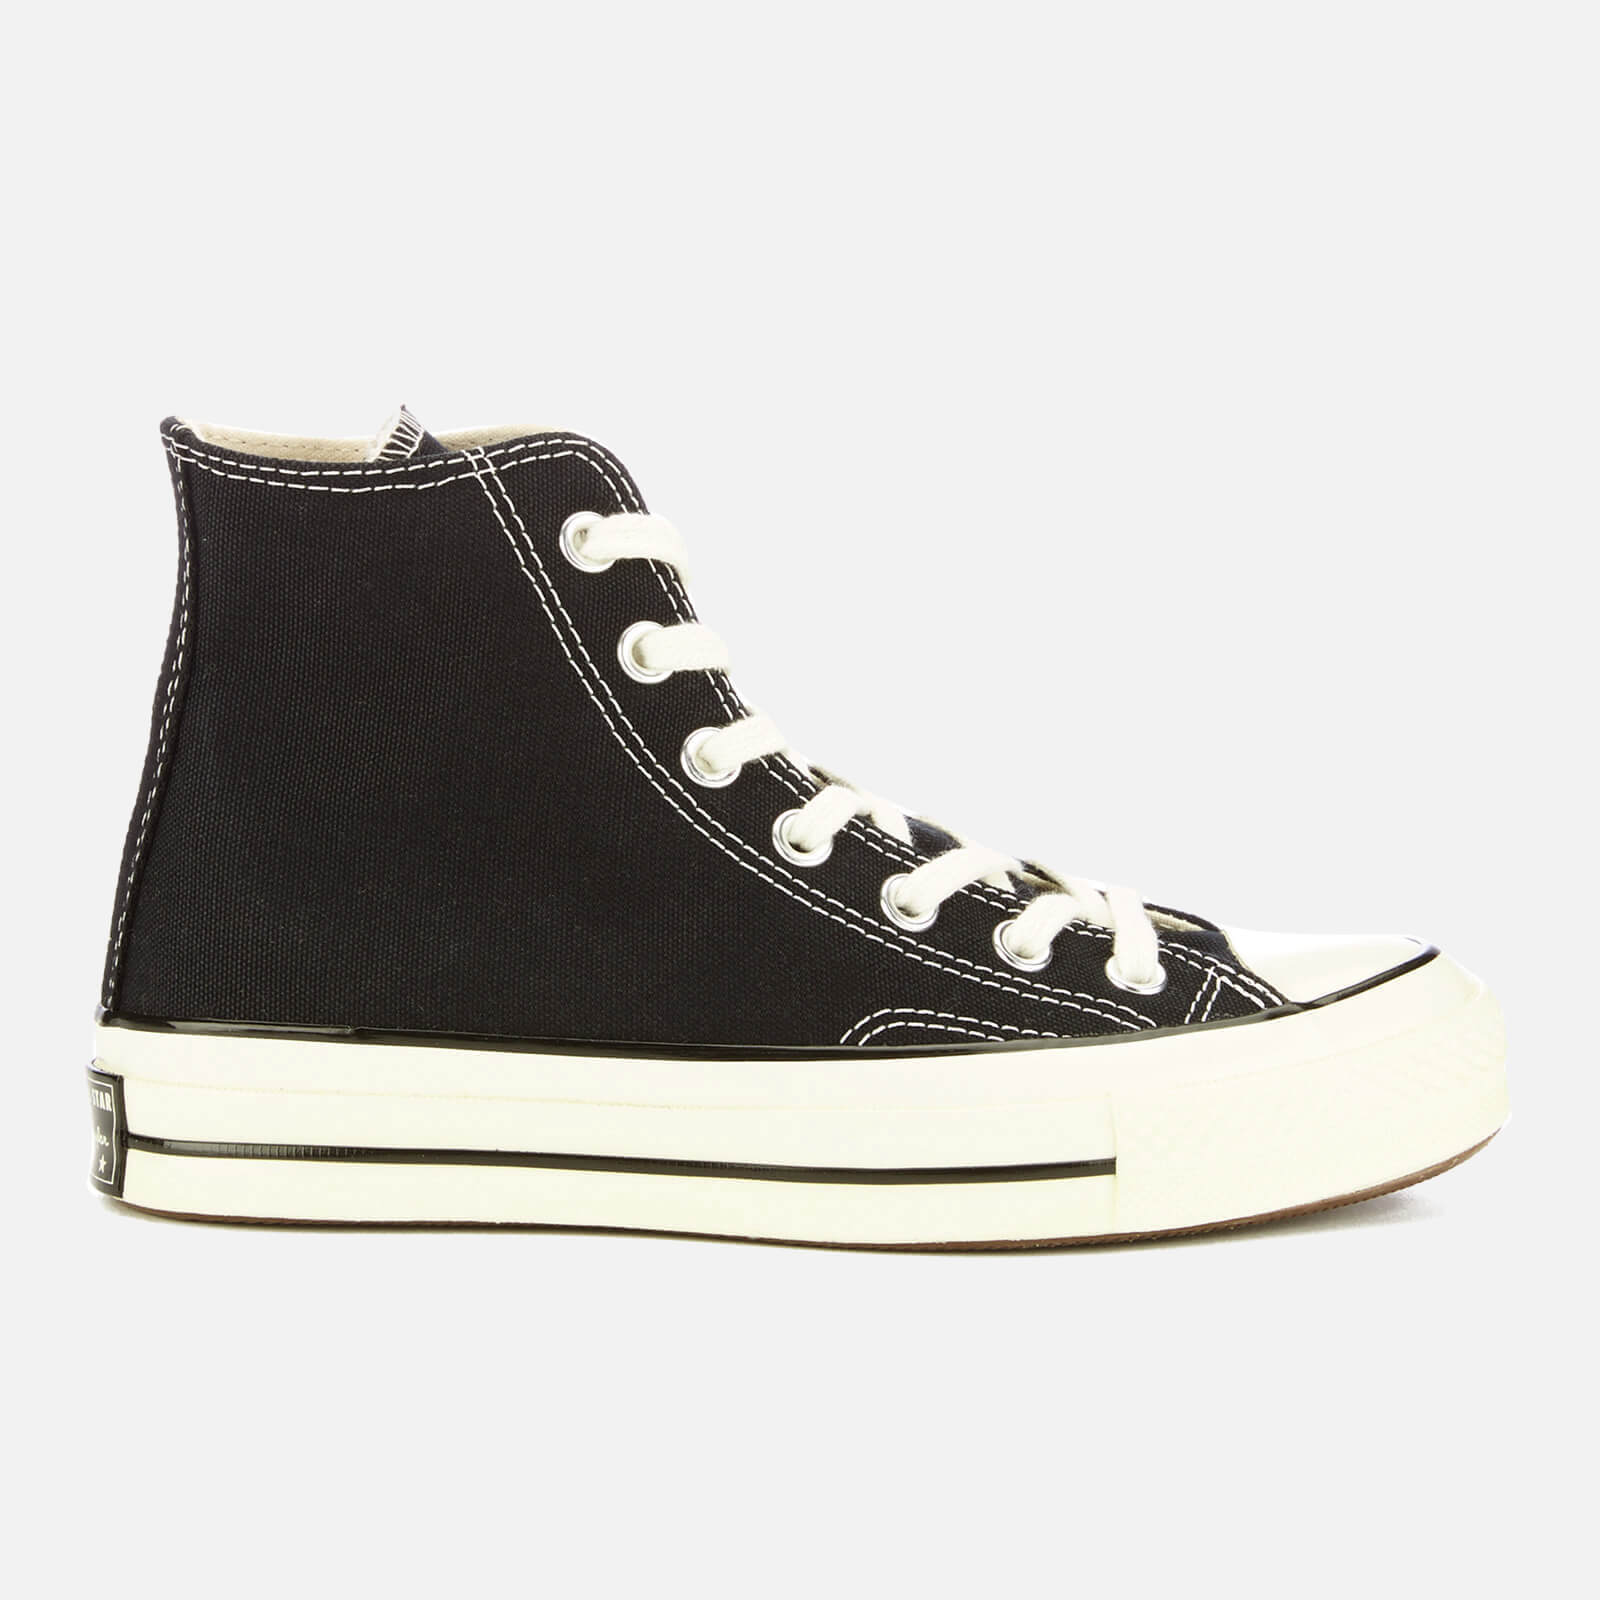 Converse Chuck Taylor All Star 70 Hi-Top Trainers - Black Egret - Free UK  Delivery over £50 3b3420e14